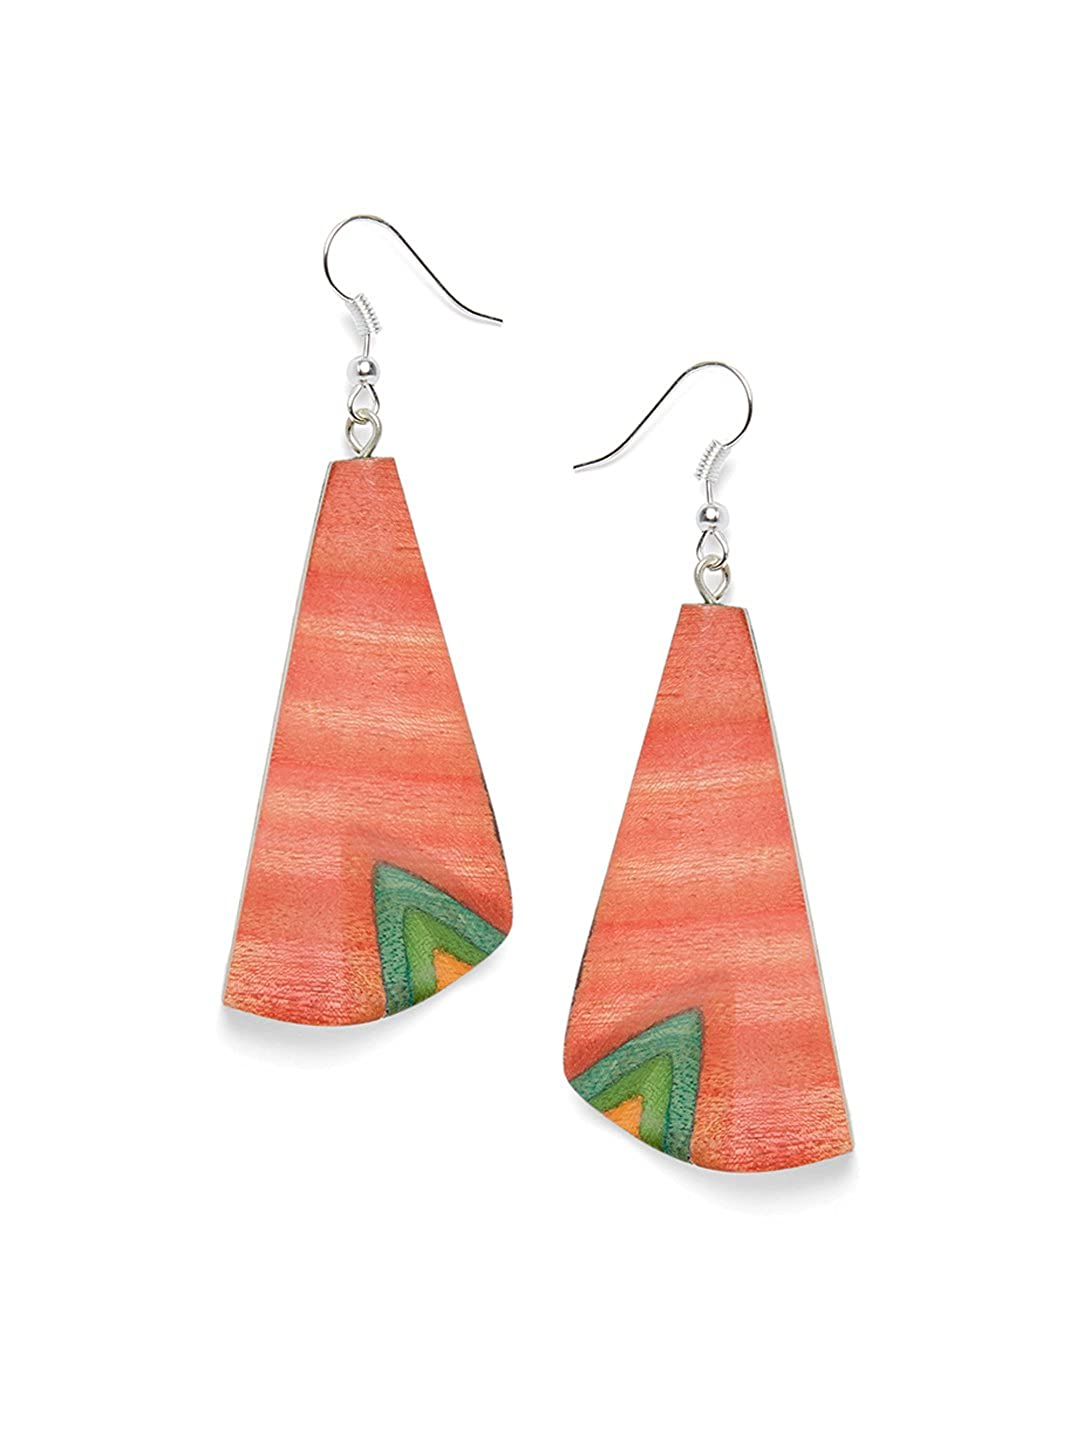 ZeroKaata Fashion Jewellery Dual Colored Designer Wooden Handmade Jewellery Danglers For Girls and Women